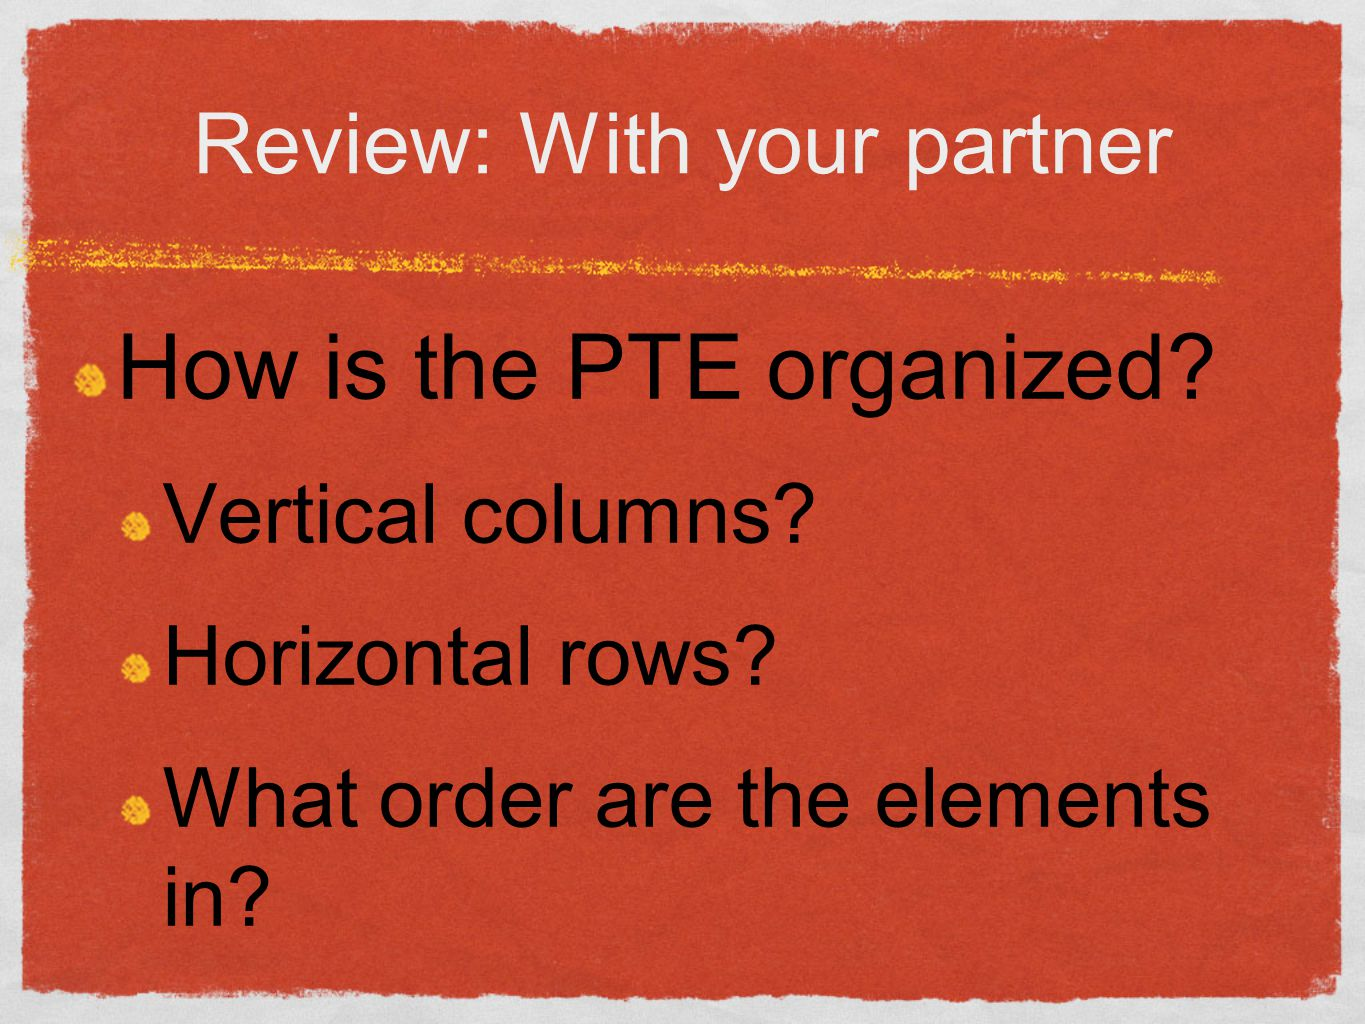 Review: With your partner How is the PTE organized? Vertical columns? Horizontal rows? What order are the elements in?